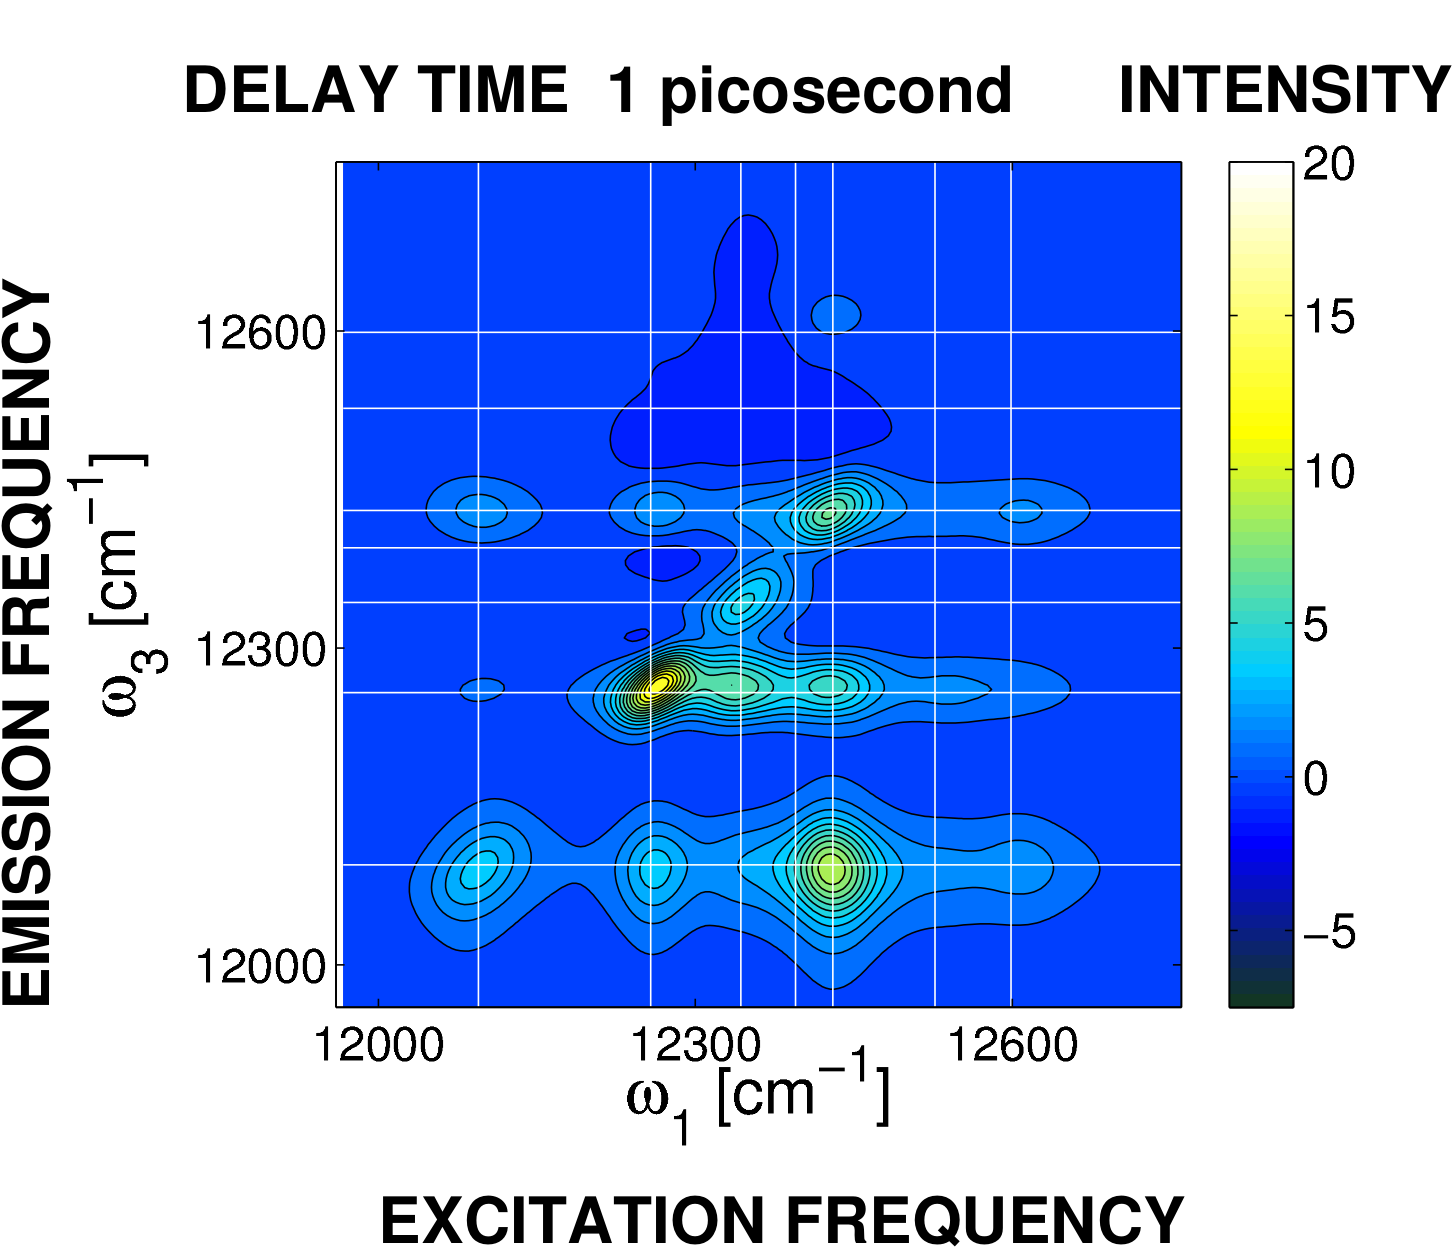 Time-resolved spectroscopy of the Fenna-Matthews Olson complex computed with GPU-HEOM. After 1 picosecond intensity peaks below the diagonal of the two-dimensional frequency representation shows the conversion of excitation energy to molecular vibrations.